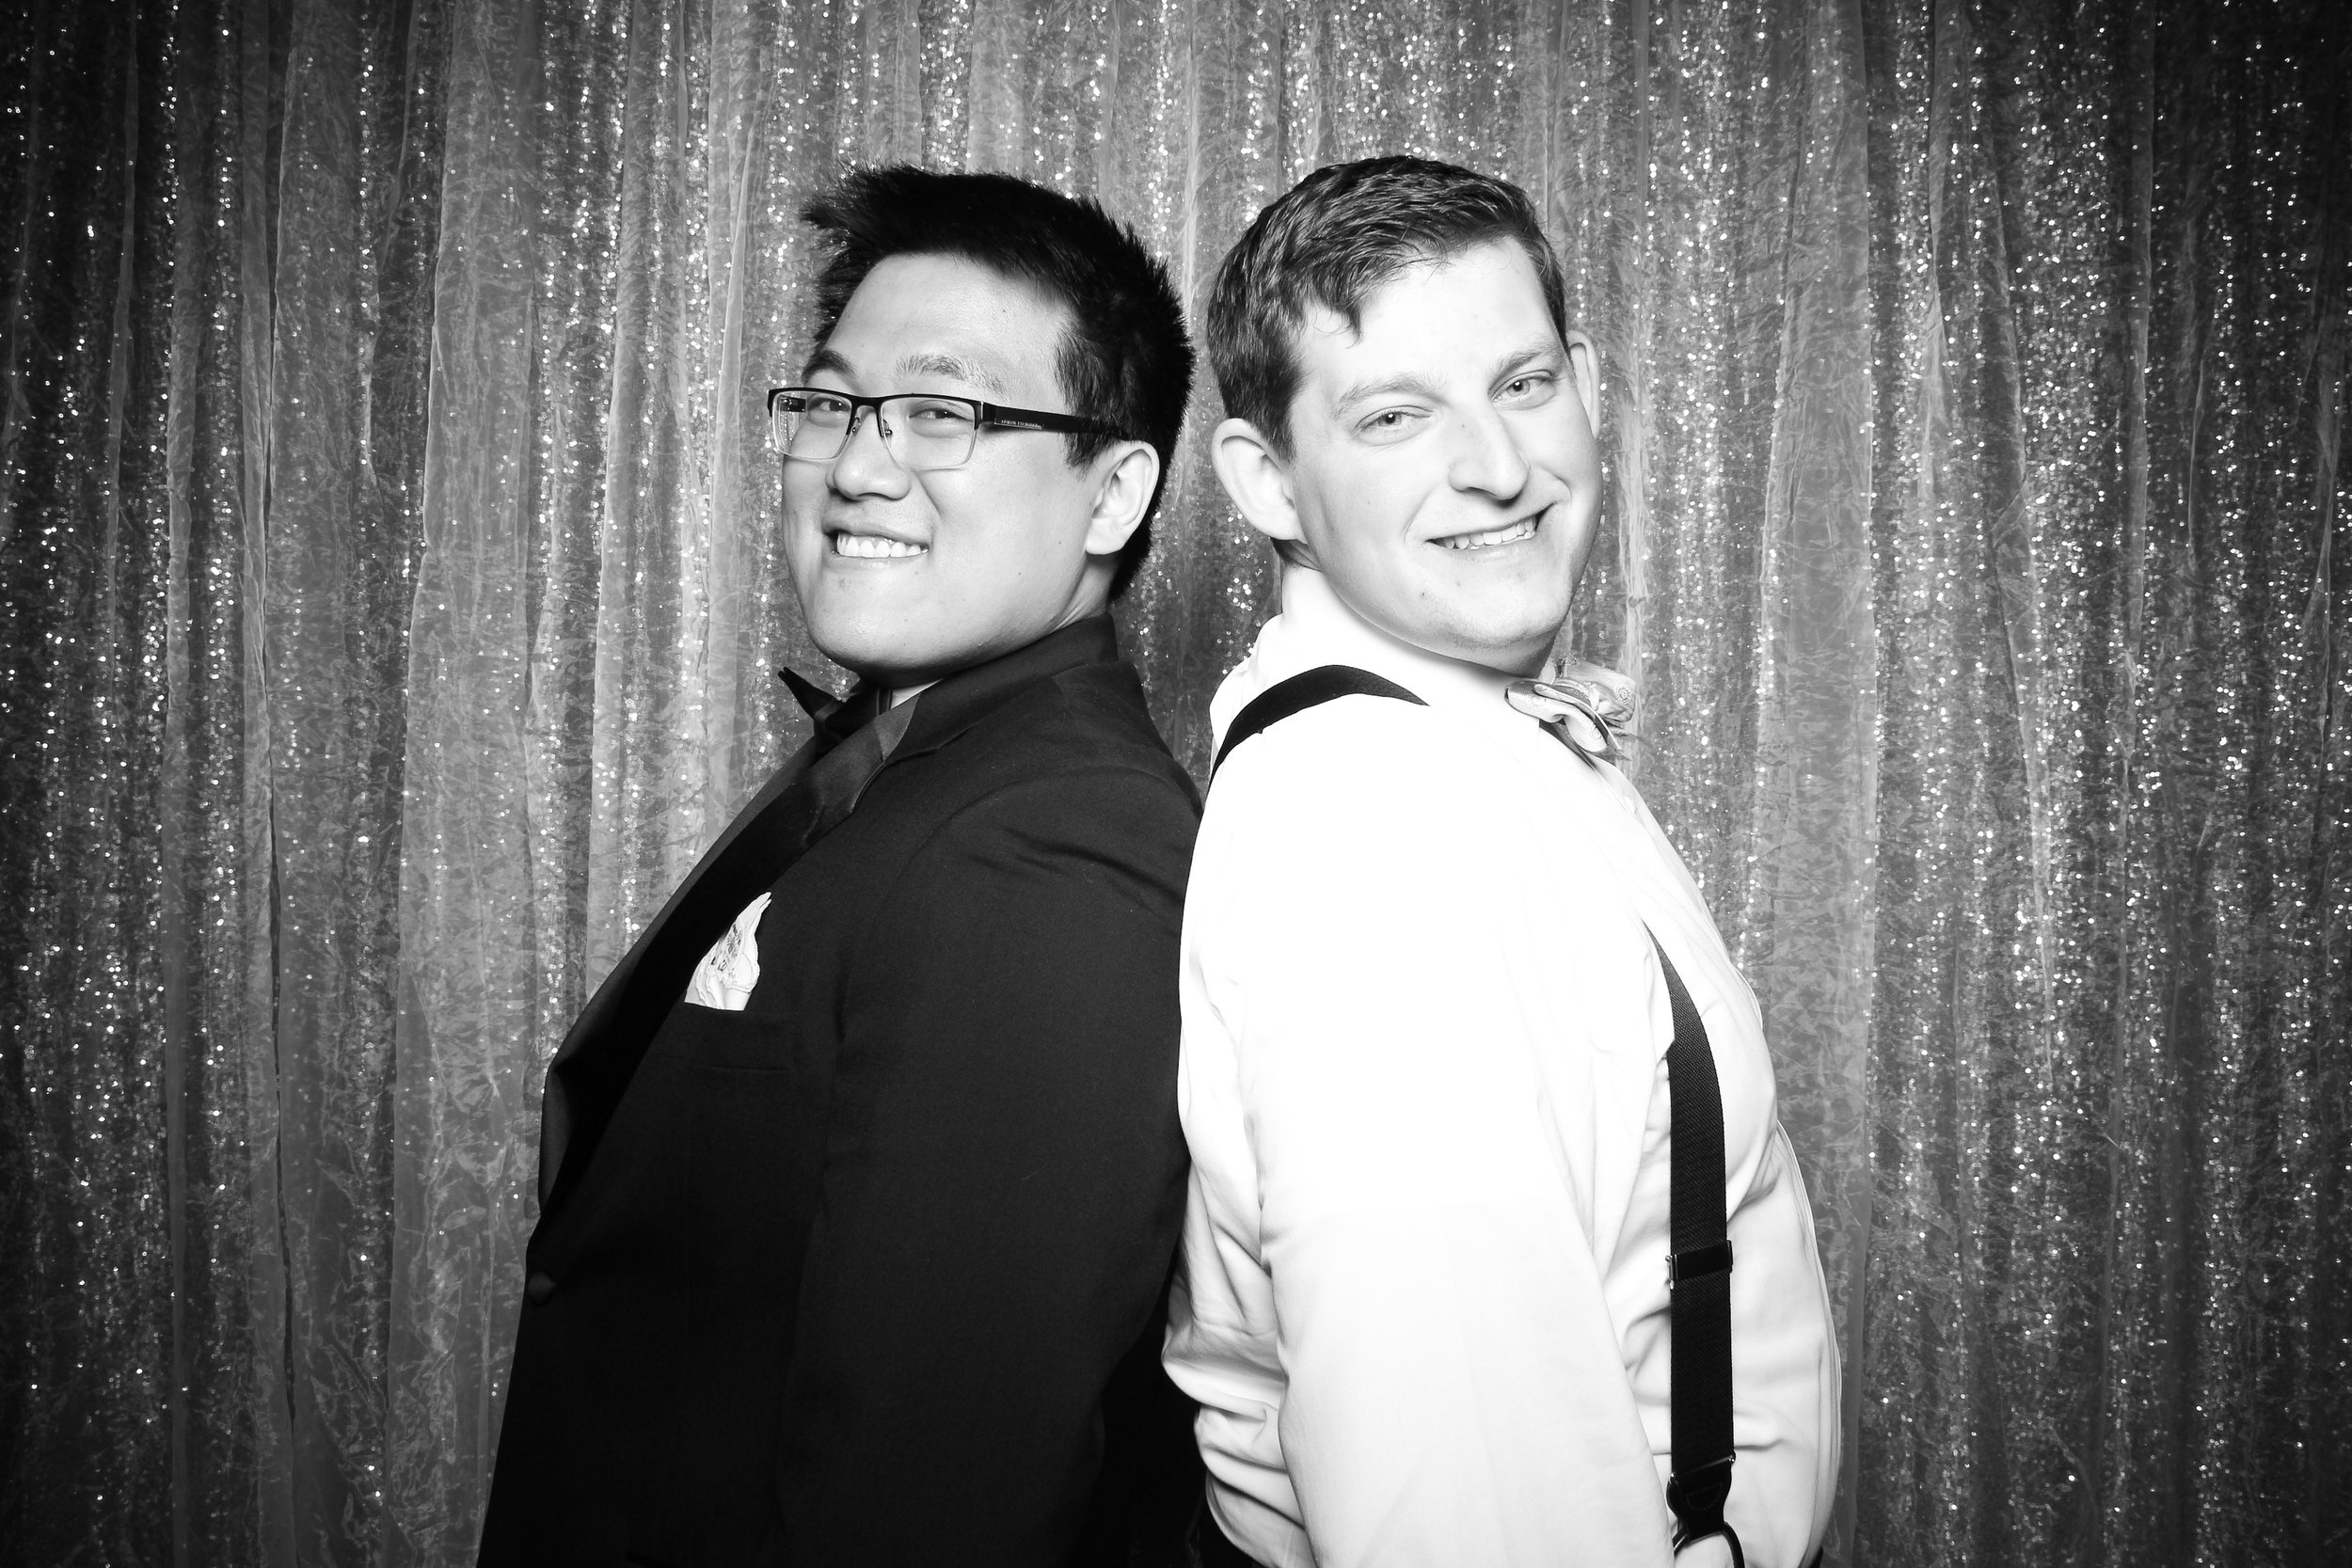 Chicago_Vintage_Wedding_Photobooth_Glen_Club_11.jpg